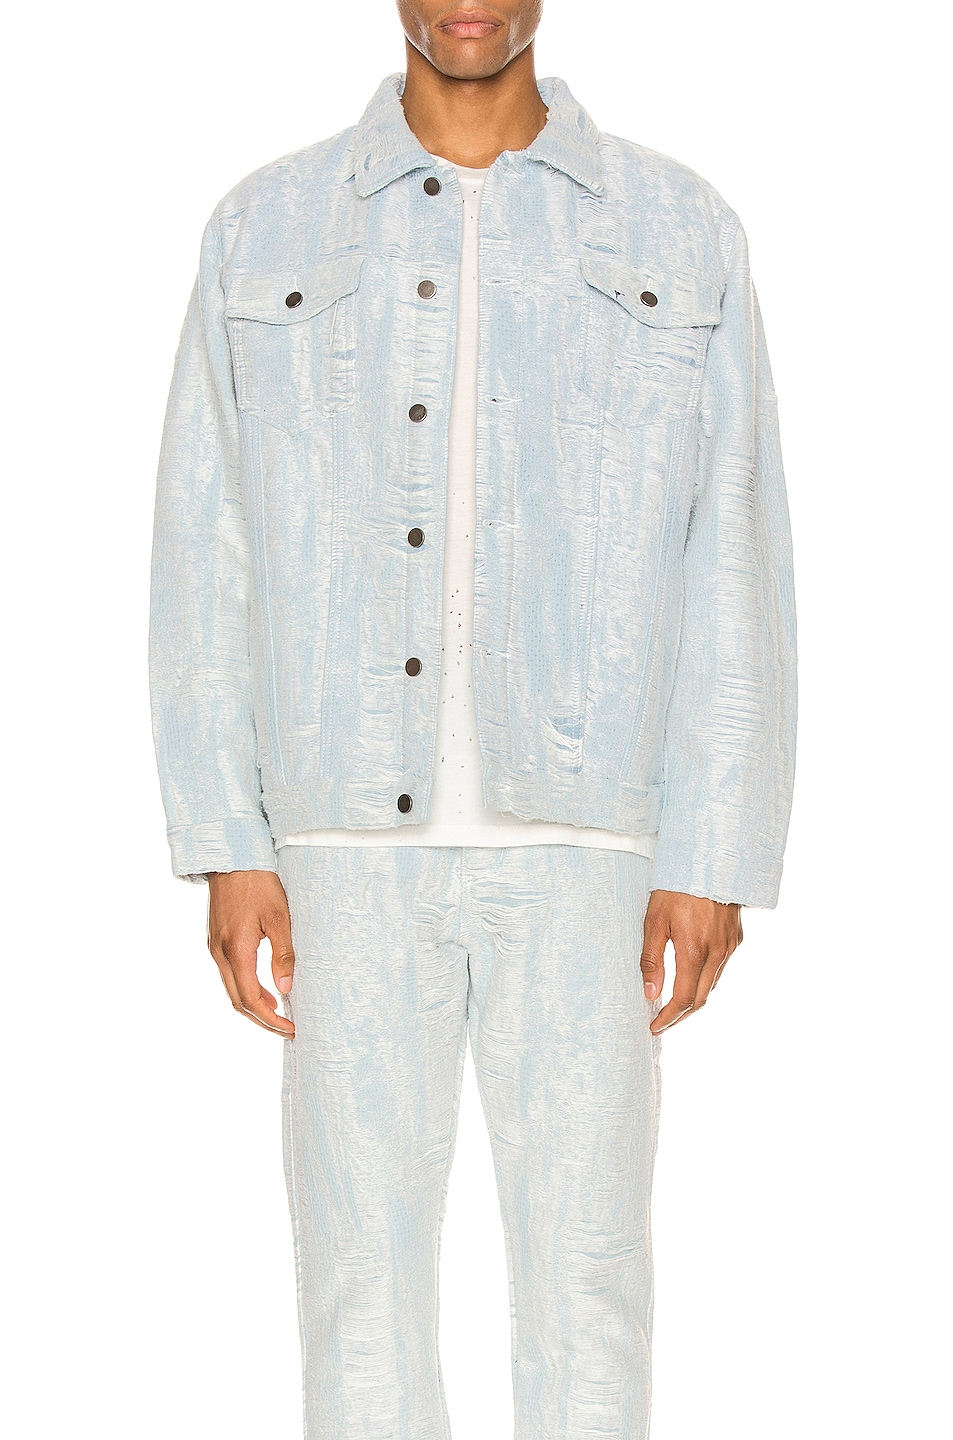 Image 1 of Who Decides War by Ev Bravado Distressed Storm Denim Jacket in Denim